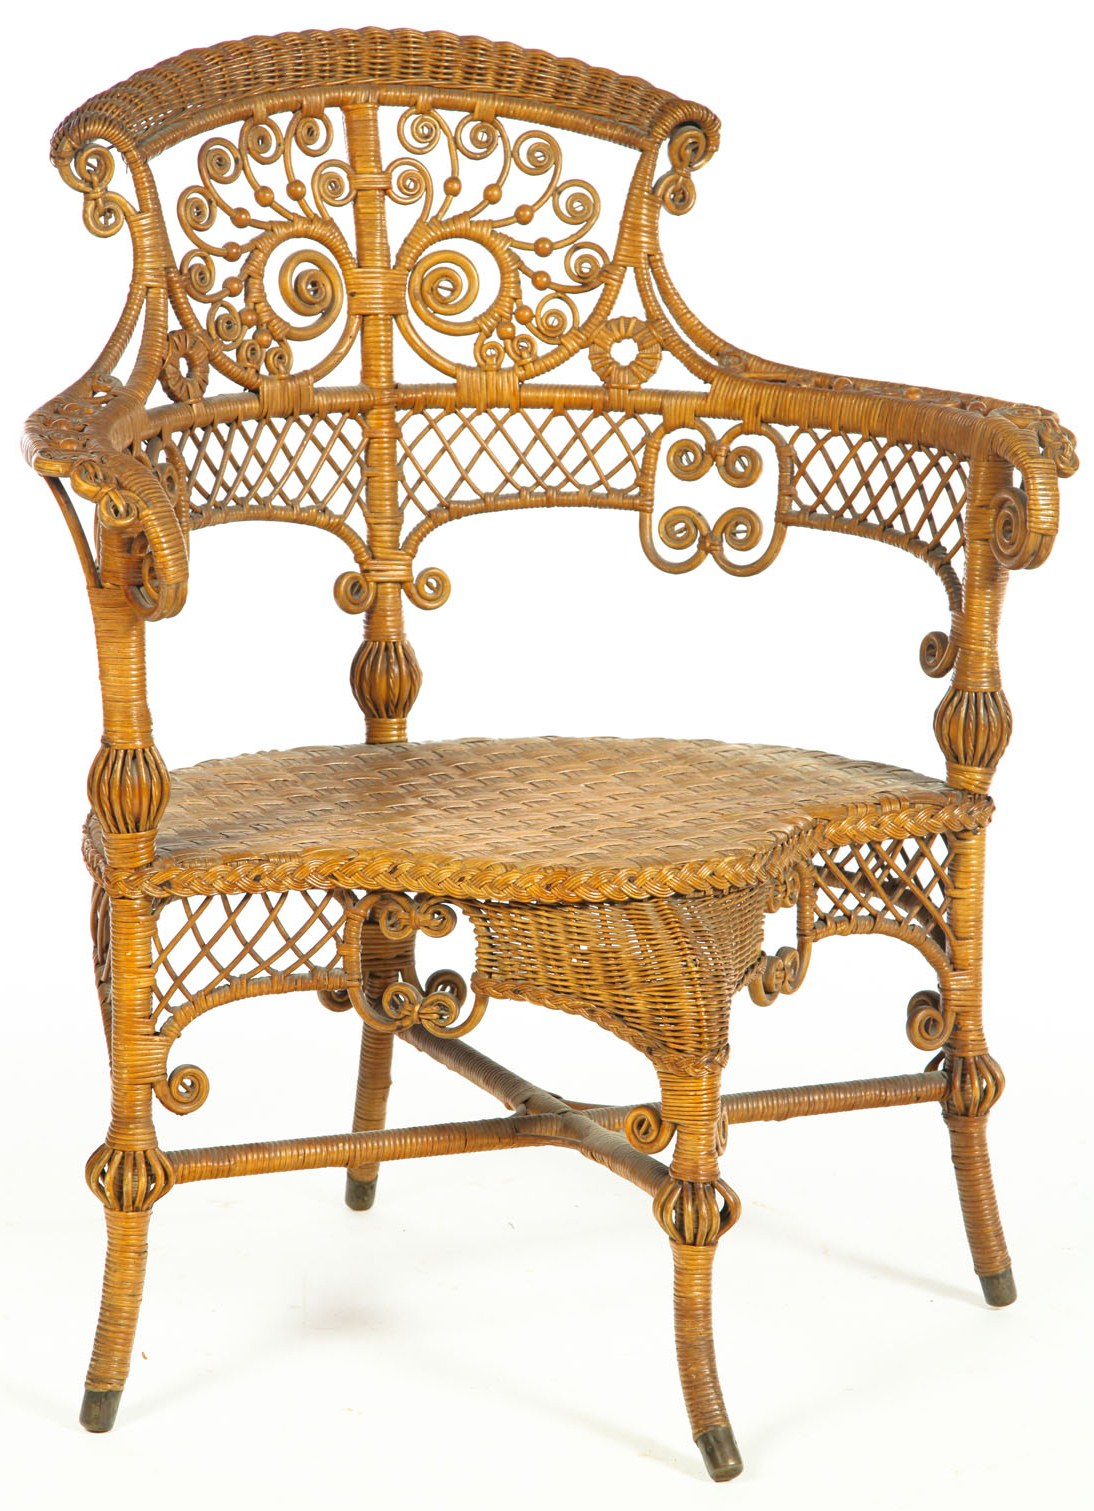 heywood wakefield wicker chairs slipcovered dining furniture armchair victorian